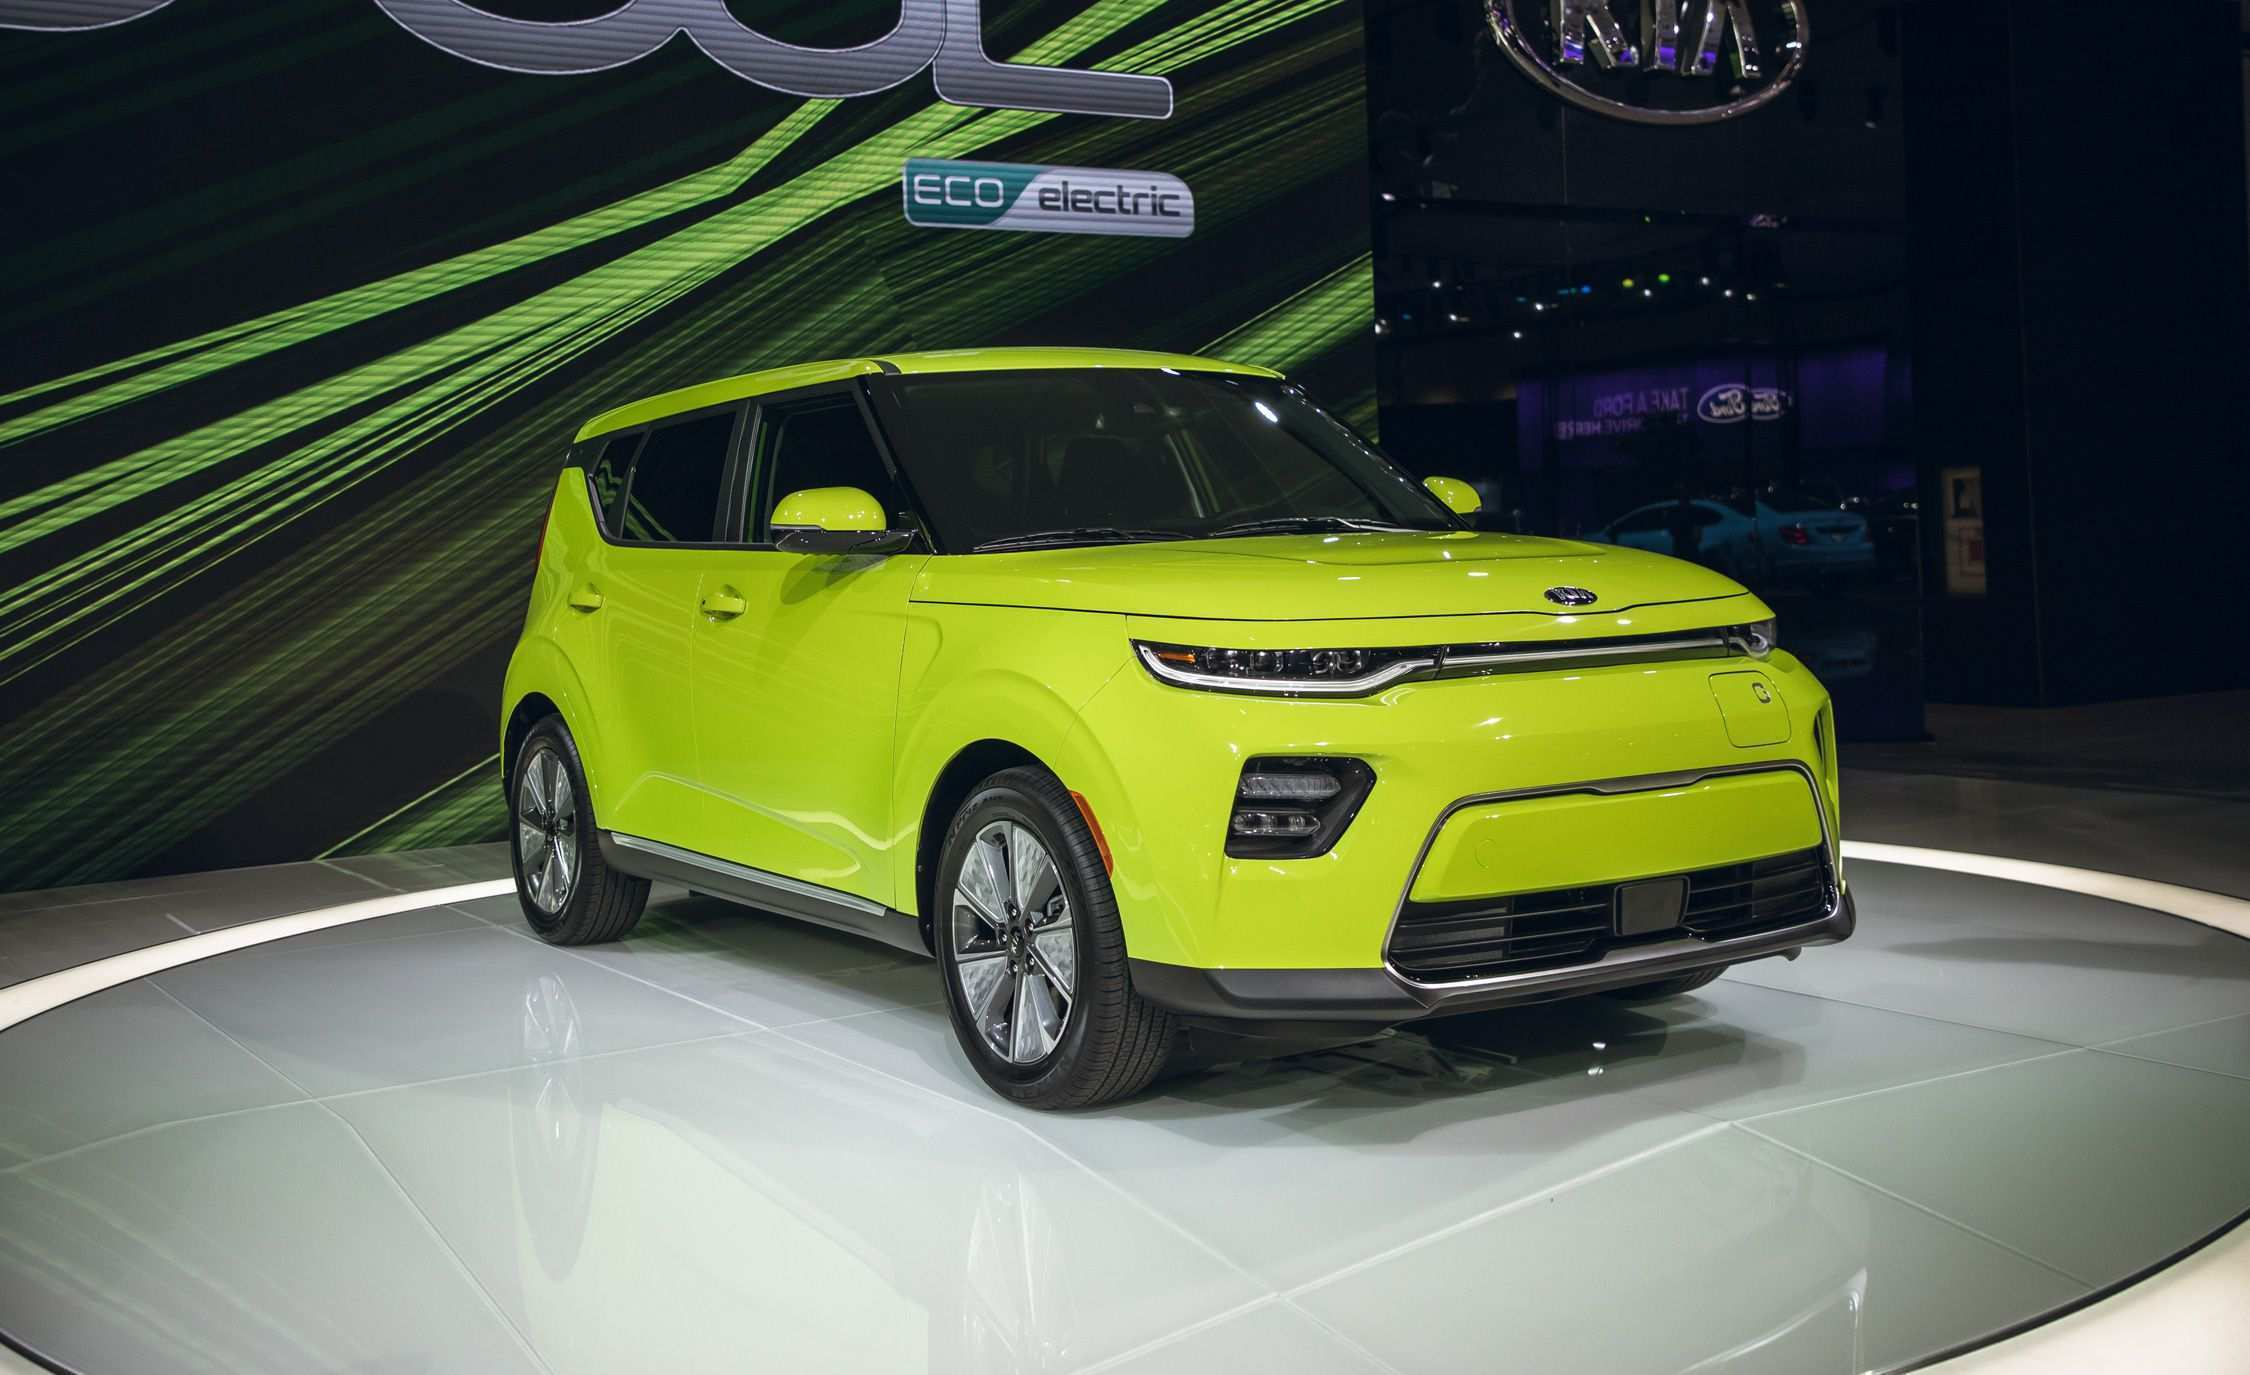 50 Gallery of Kia Soul Ev 2020 Spesification with Kia Soul Ev 2020